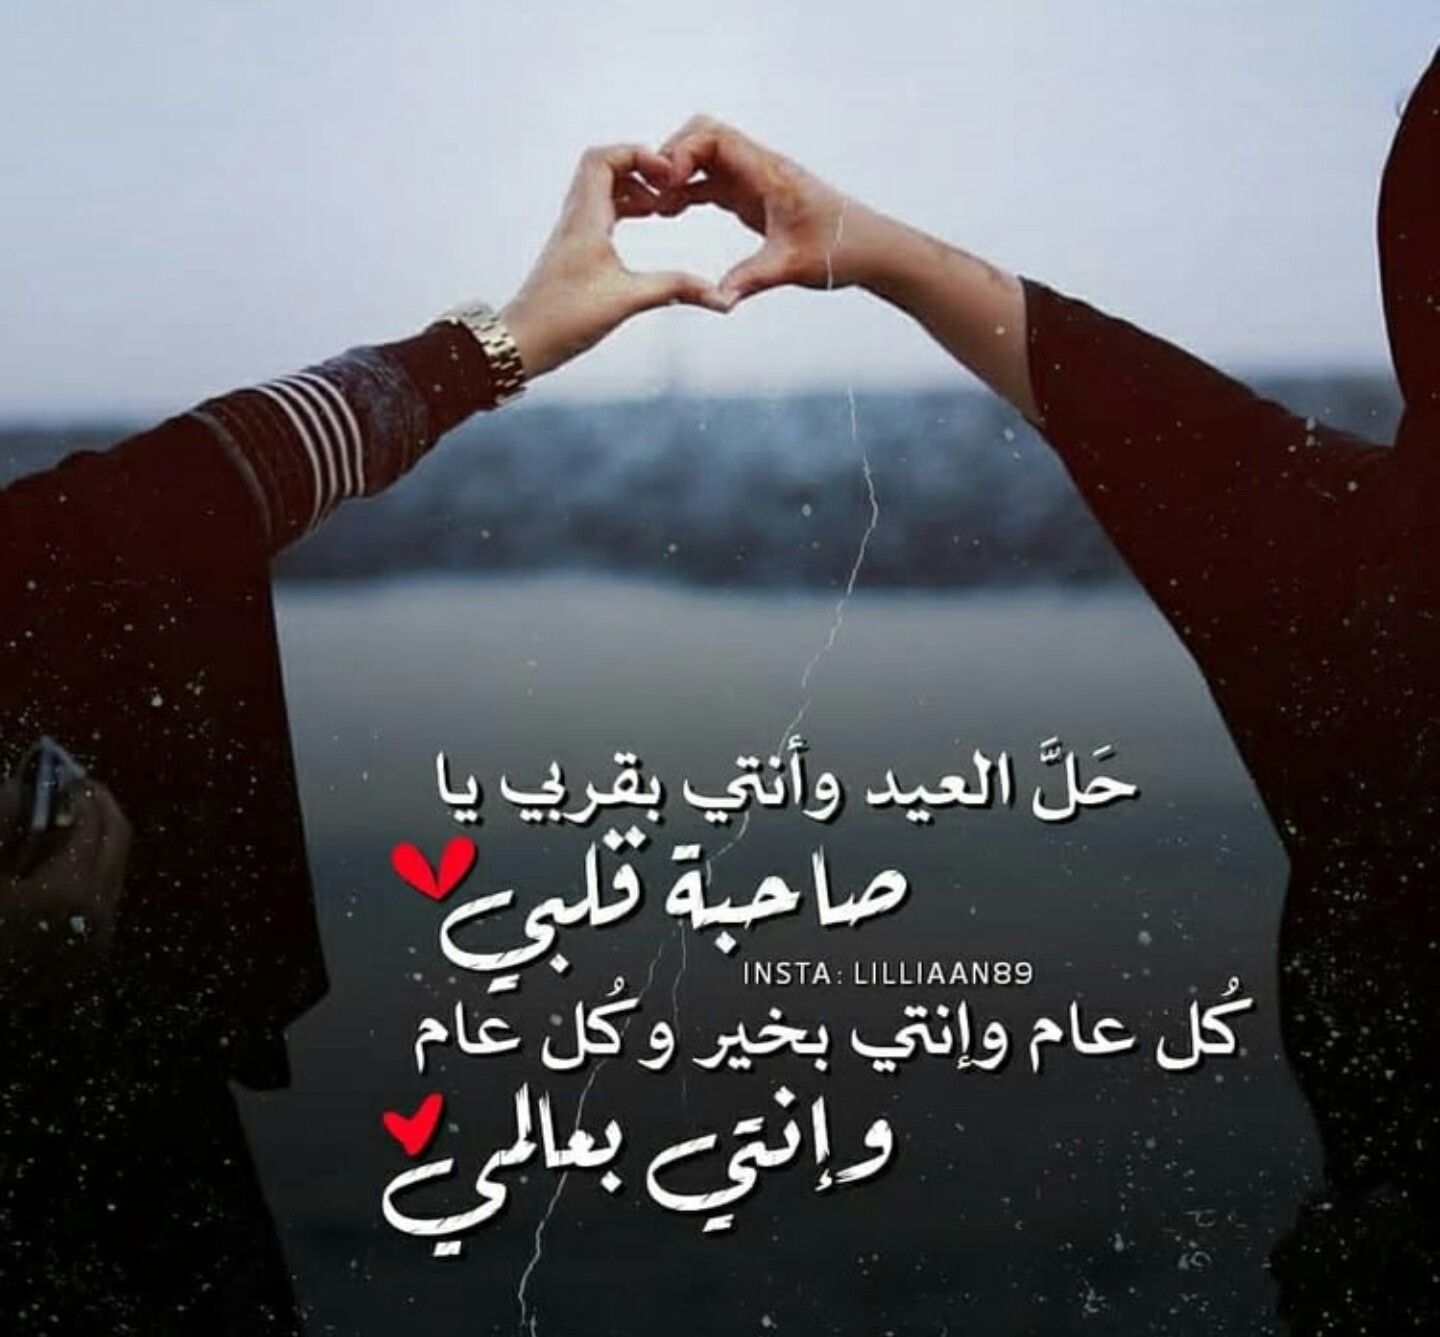 Pin By Ghadeer Alzawahrah On Cart Happy Eid Arabic Quotes Friends Forever